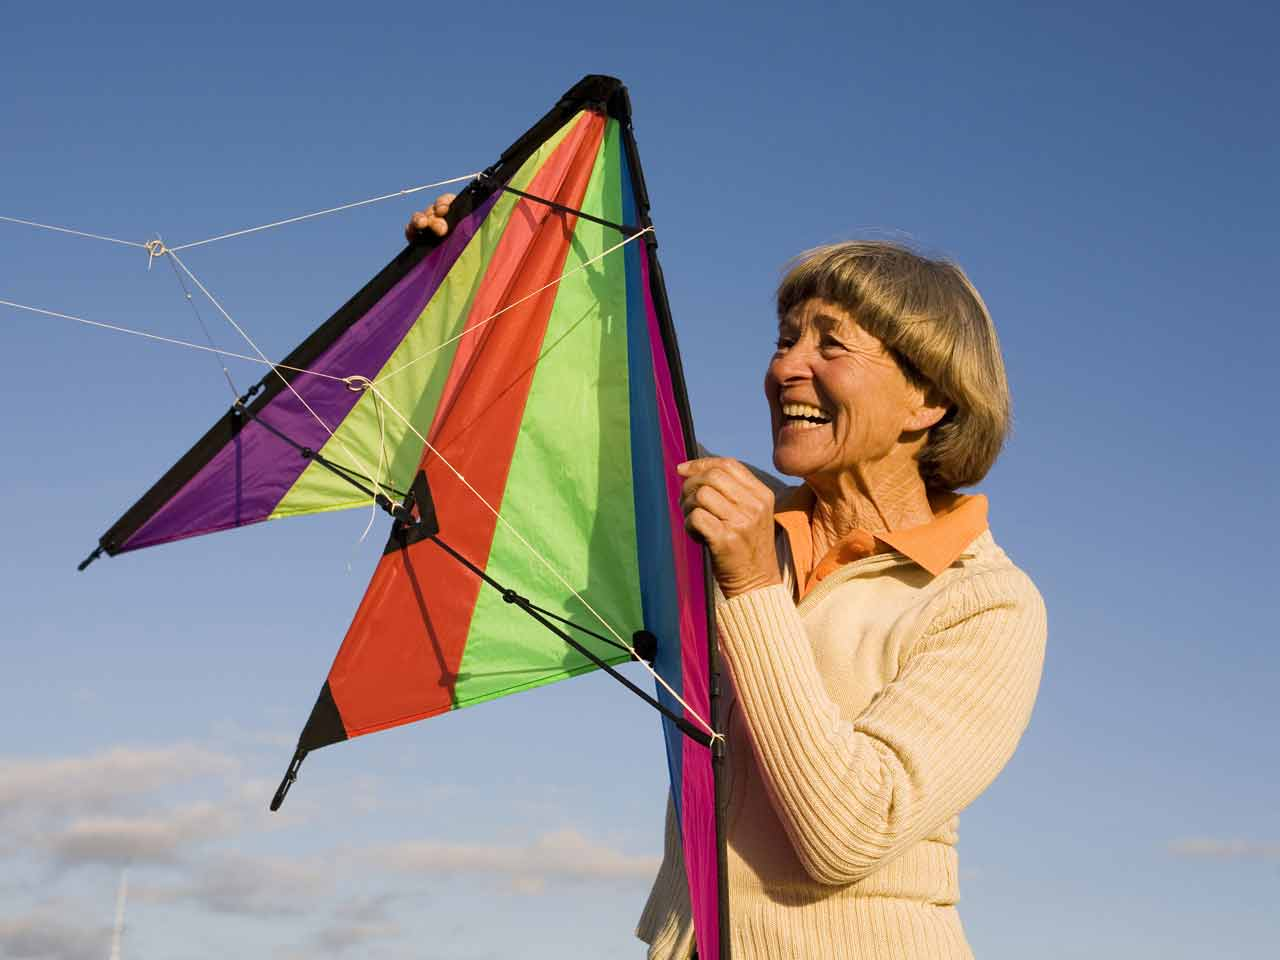 woman flying a kite